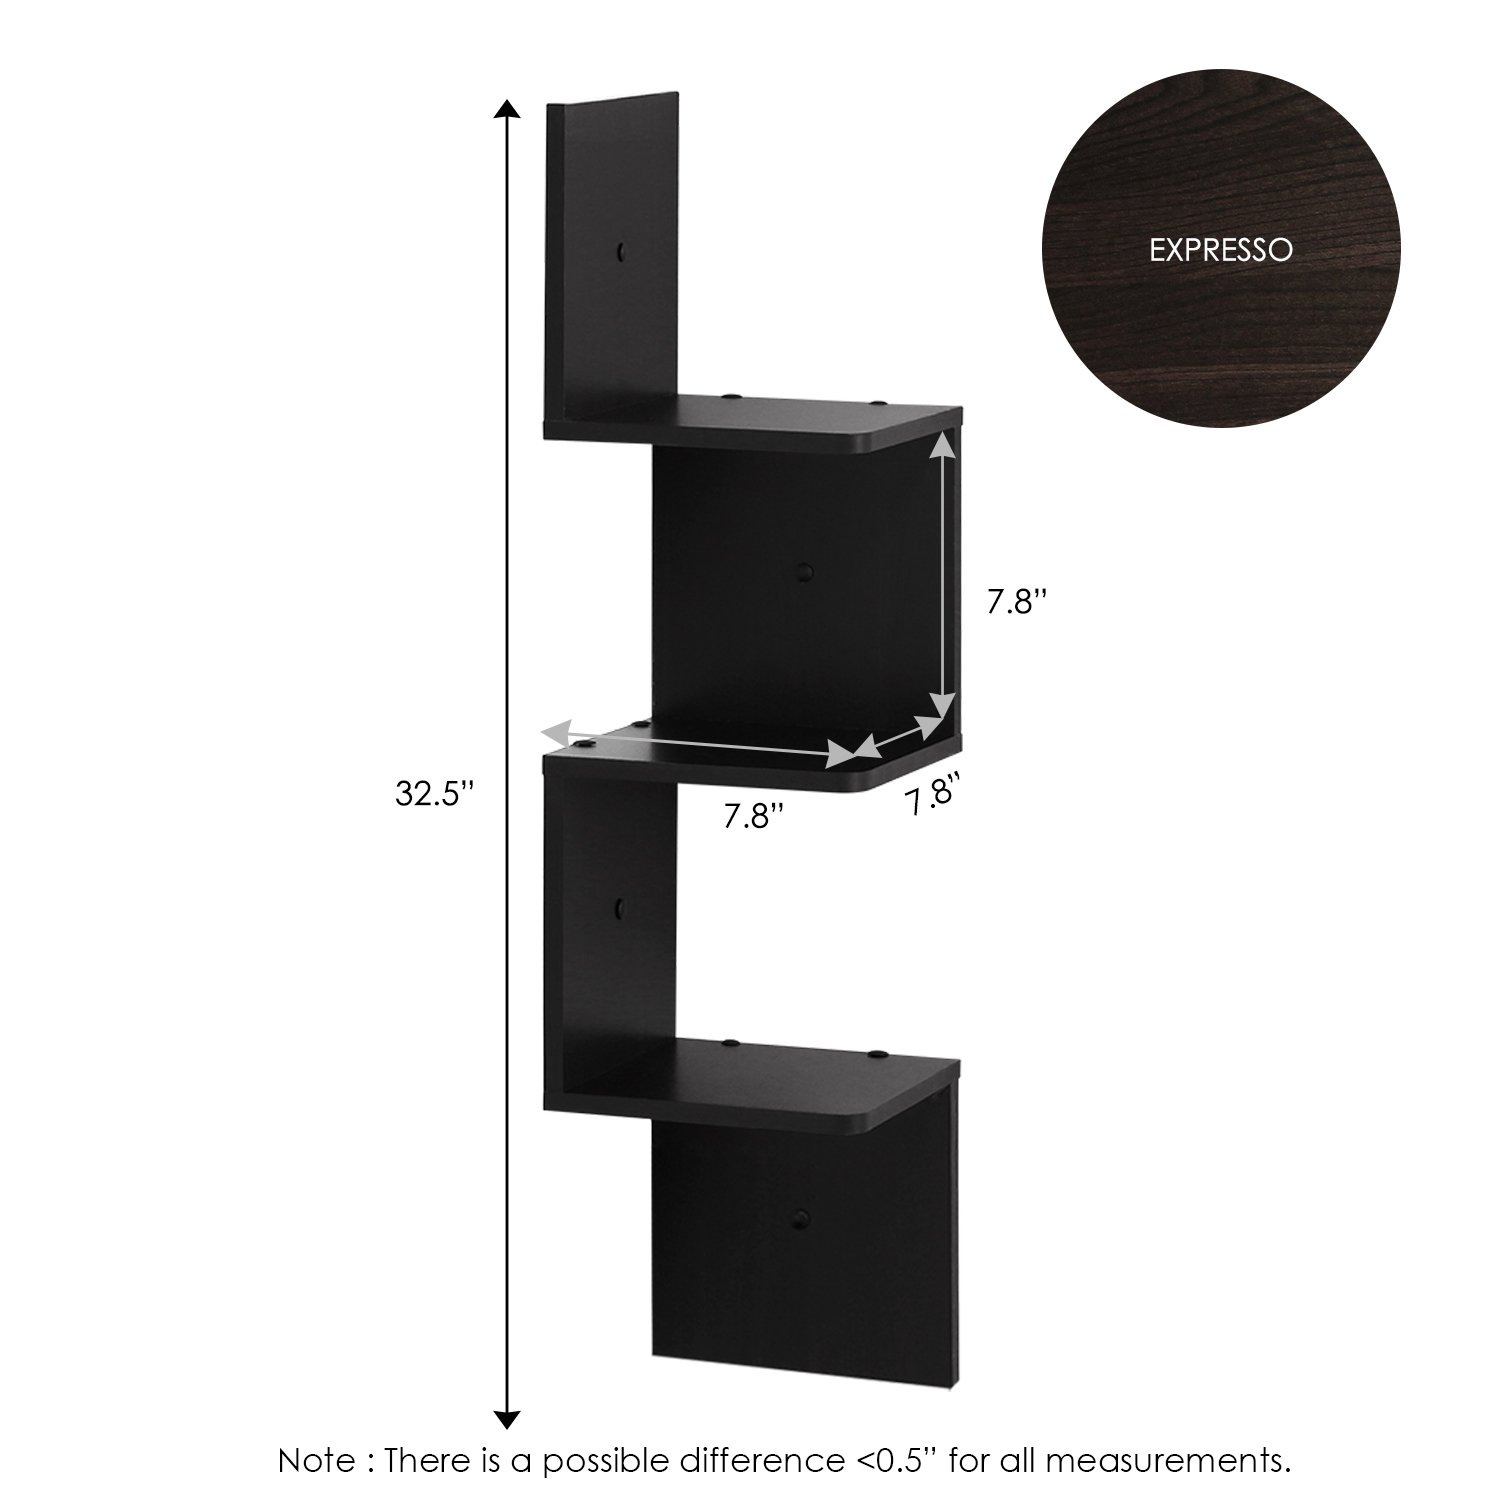 3-Tier Set of 2 FURINNO 2FR16126EX Radial Shelf Espresso